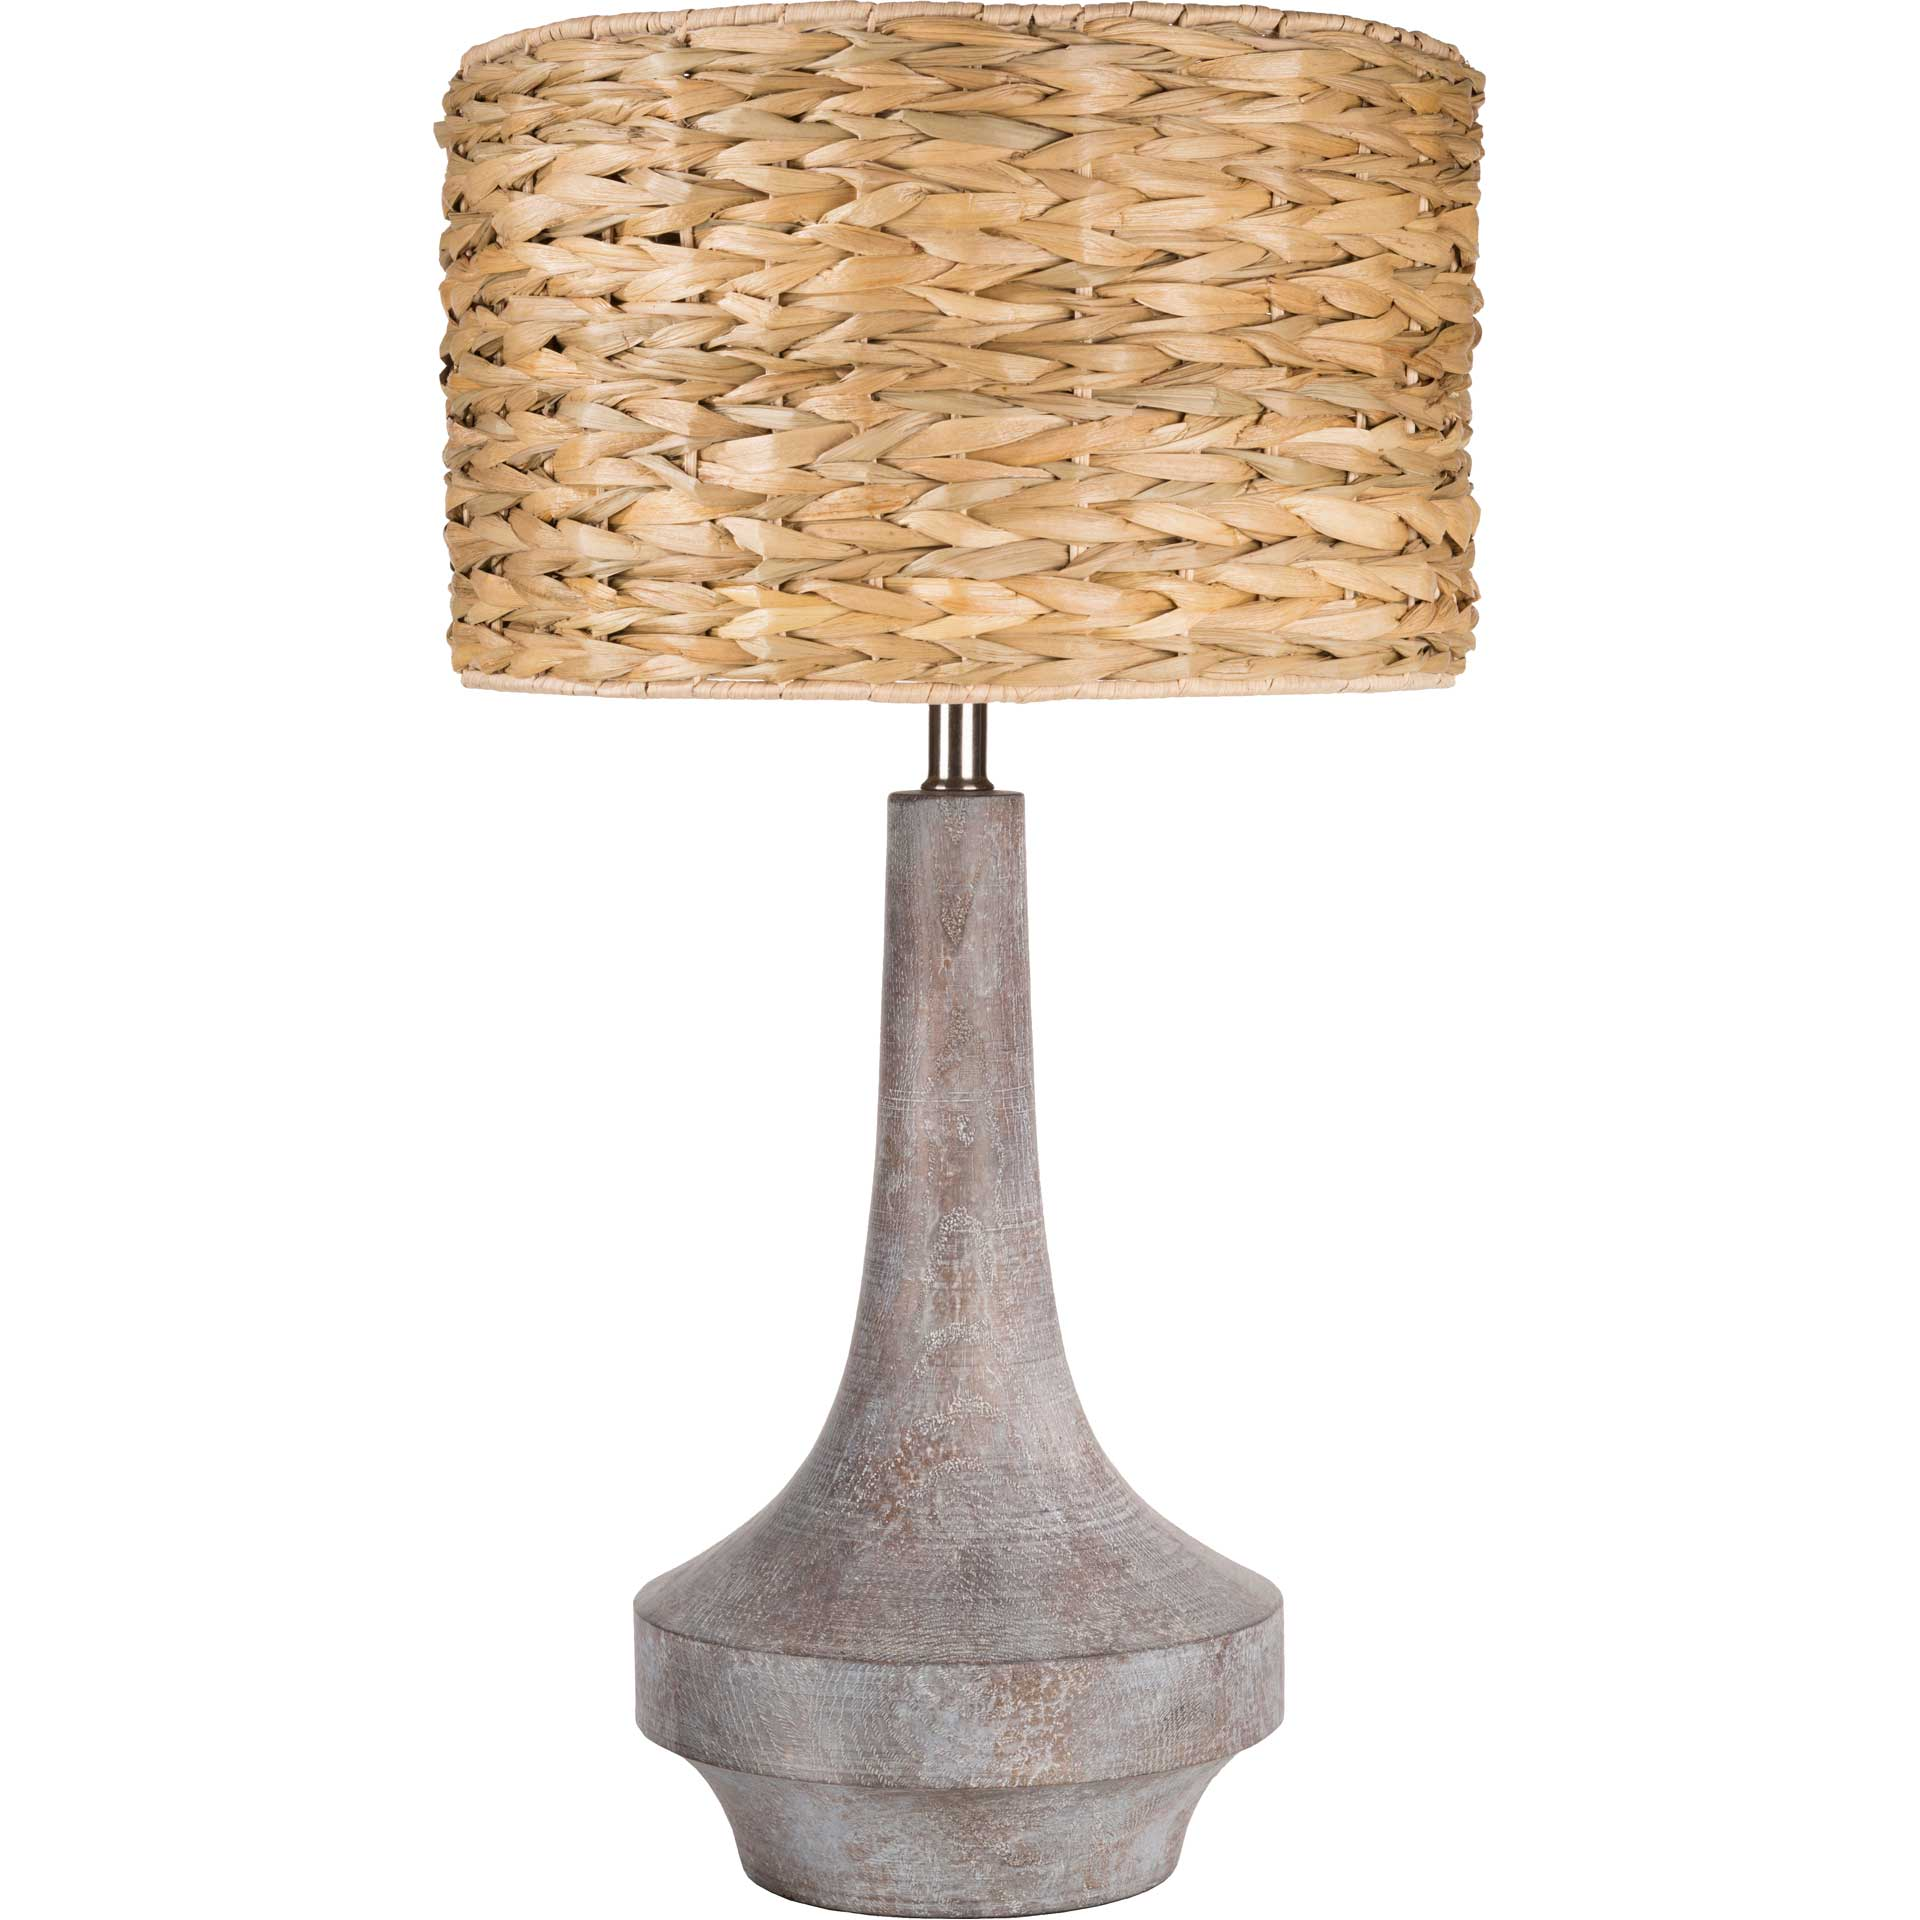 Callum Table Lamp Camel/Slate Gray/Natural